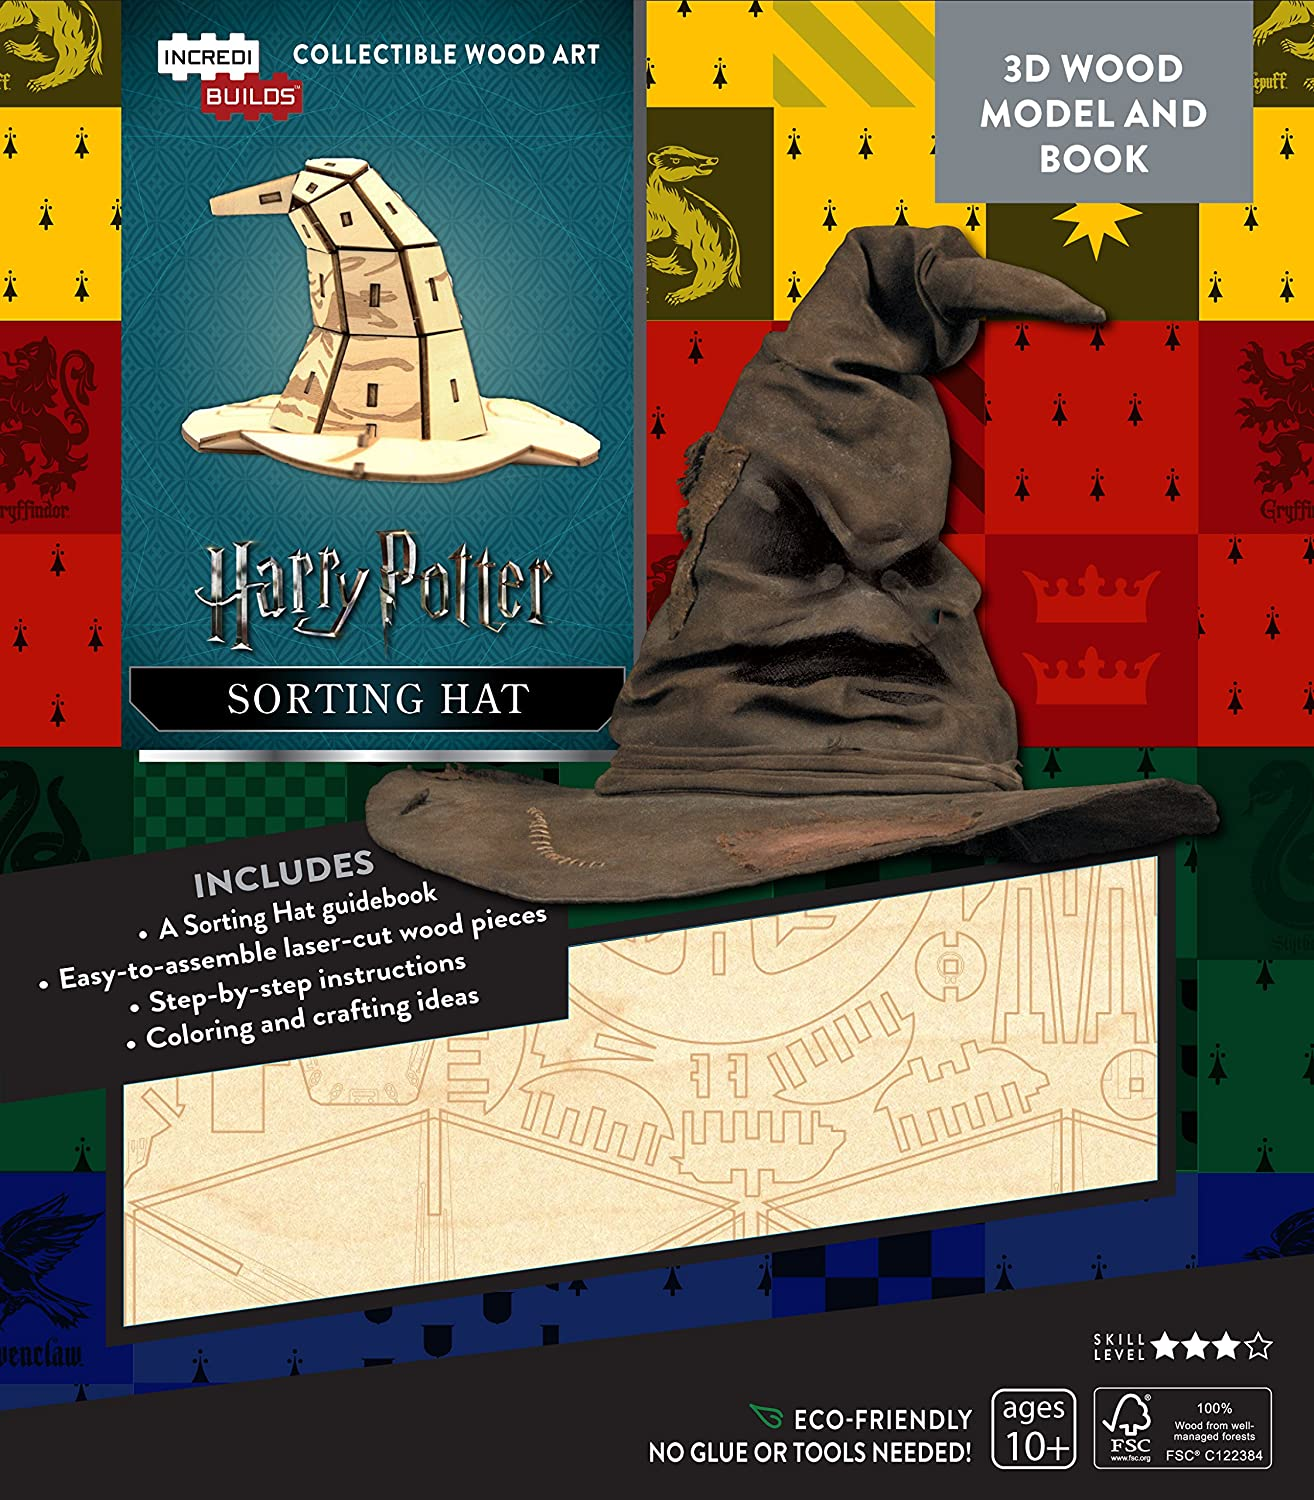 Hickoryville Incredibuilds Harry Potter Sorting Hat 3D Wood Model Bundled with Jelly Belly Harry Potter Bertie Botts Jelly Beans